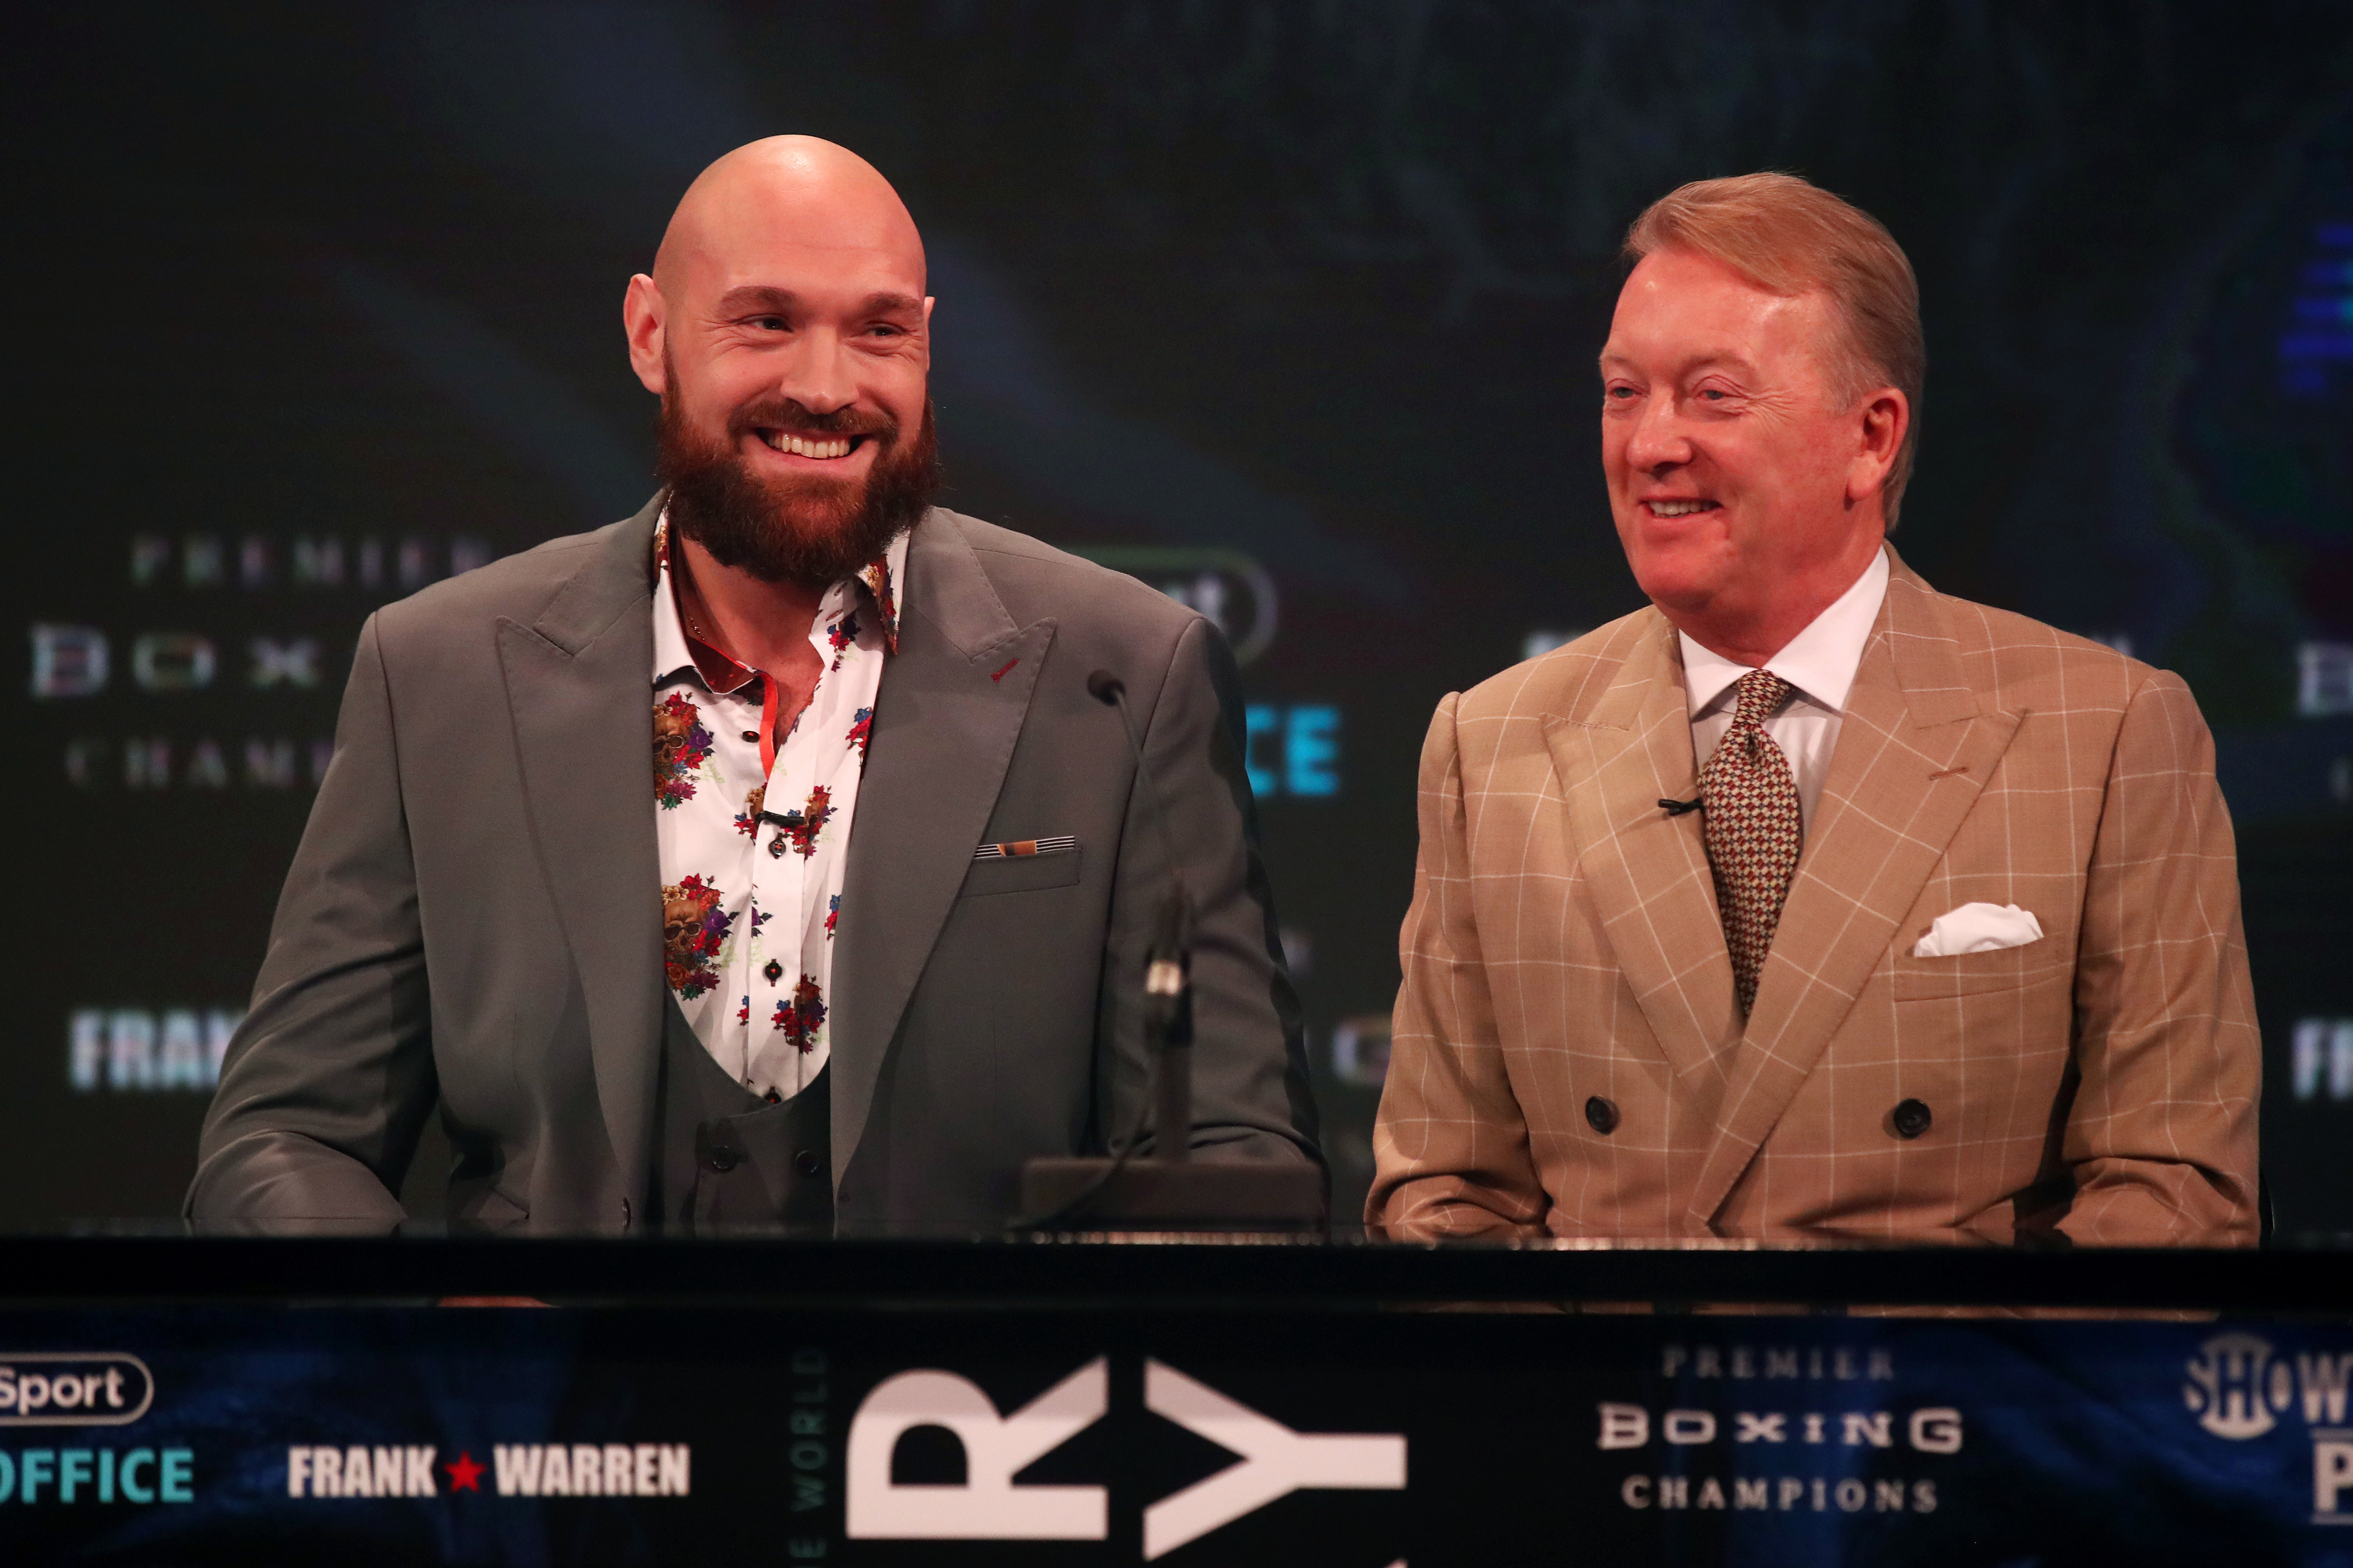 Tyson Fury is co-promoted by Frank Warren and Bob Arum